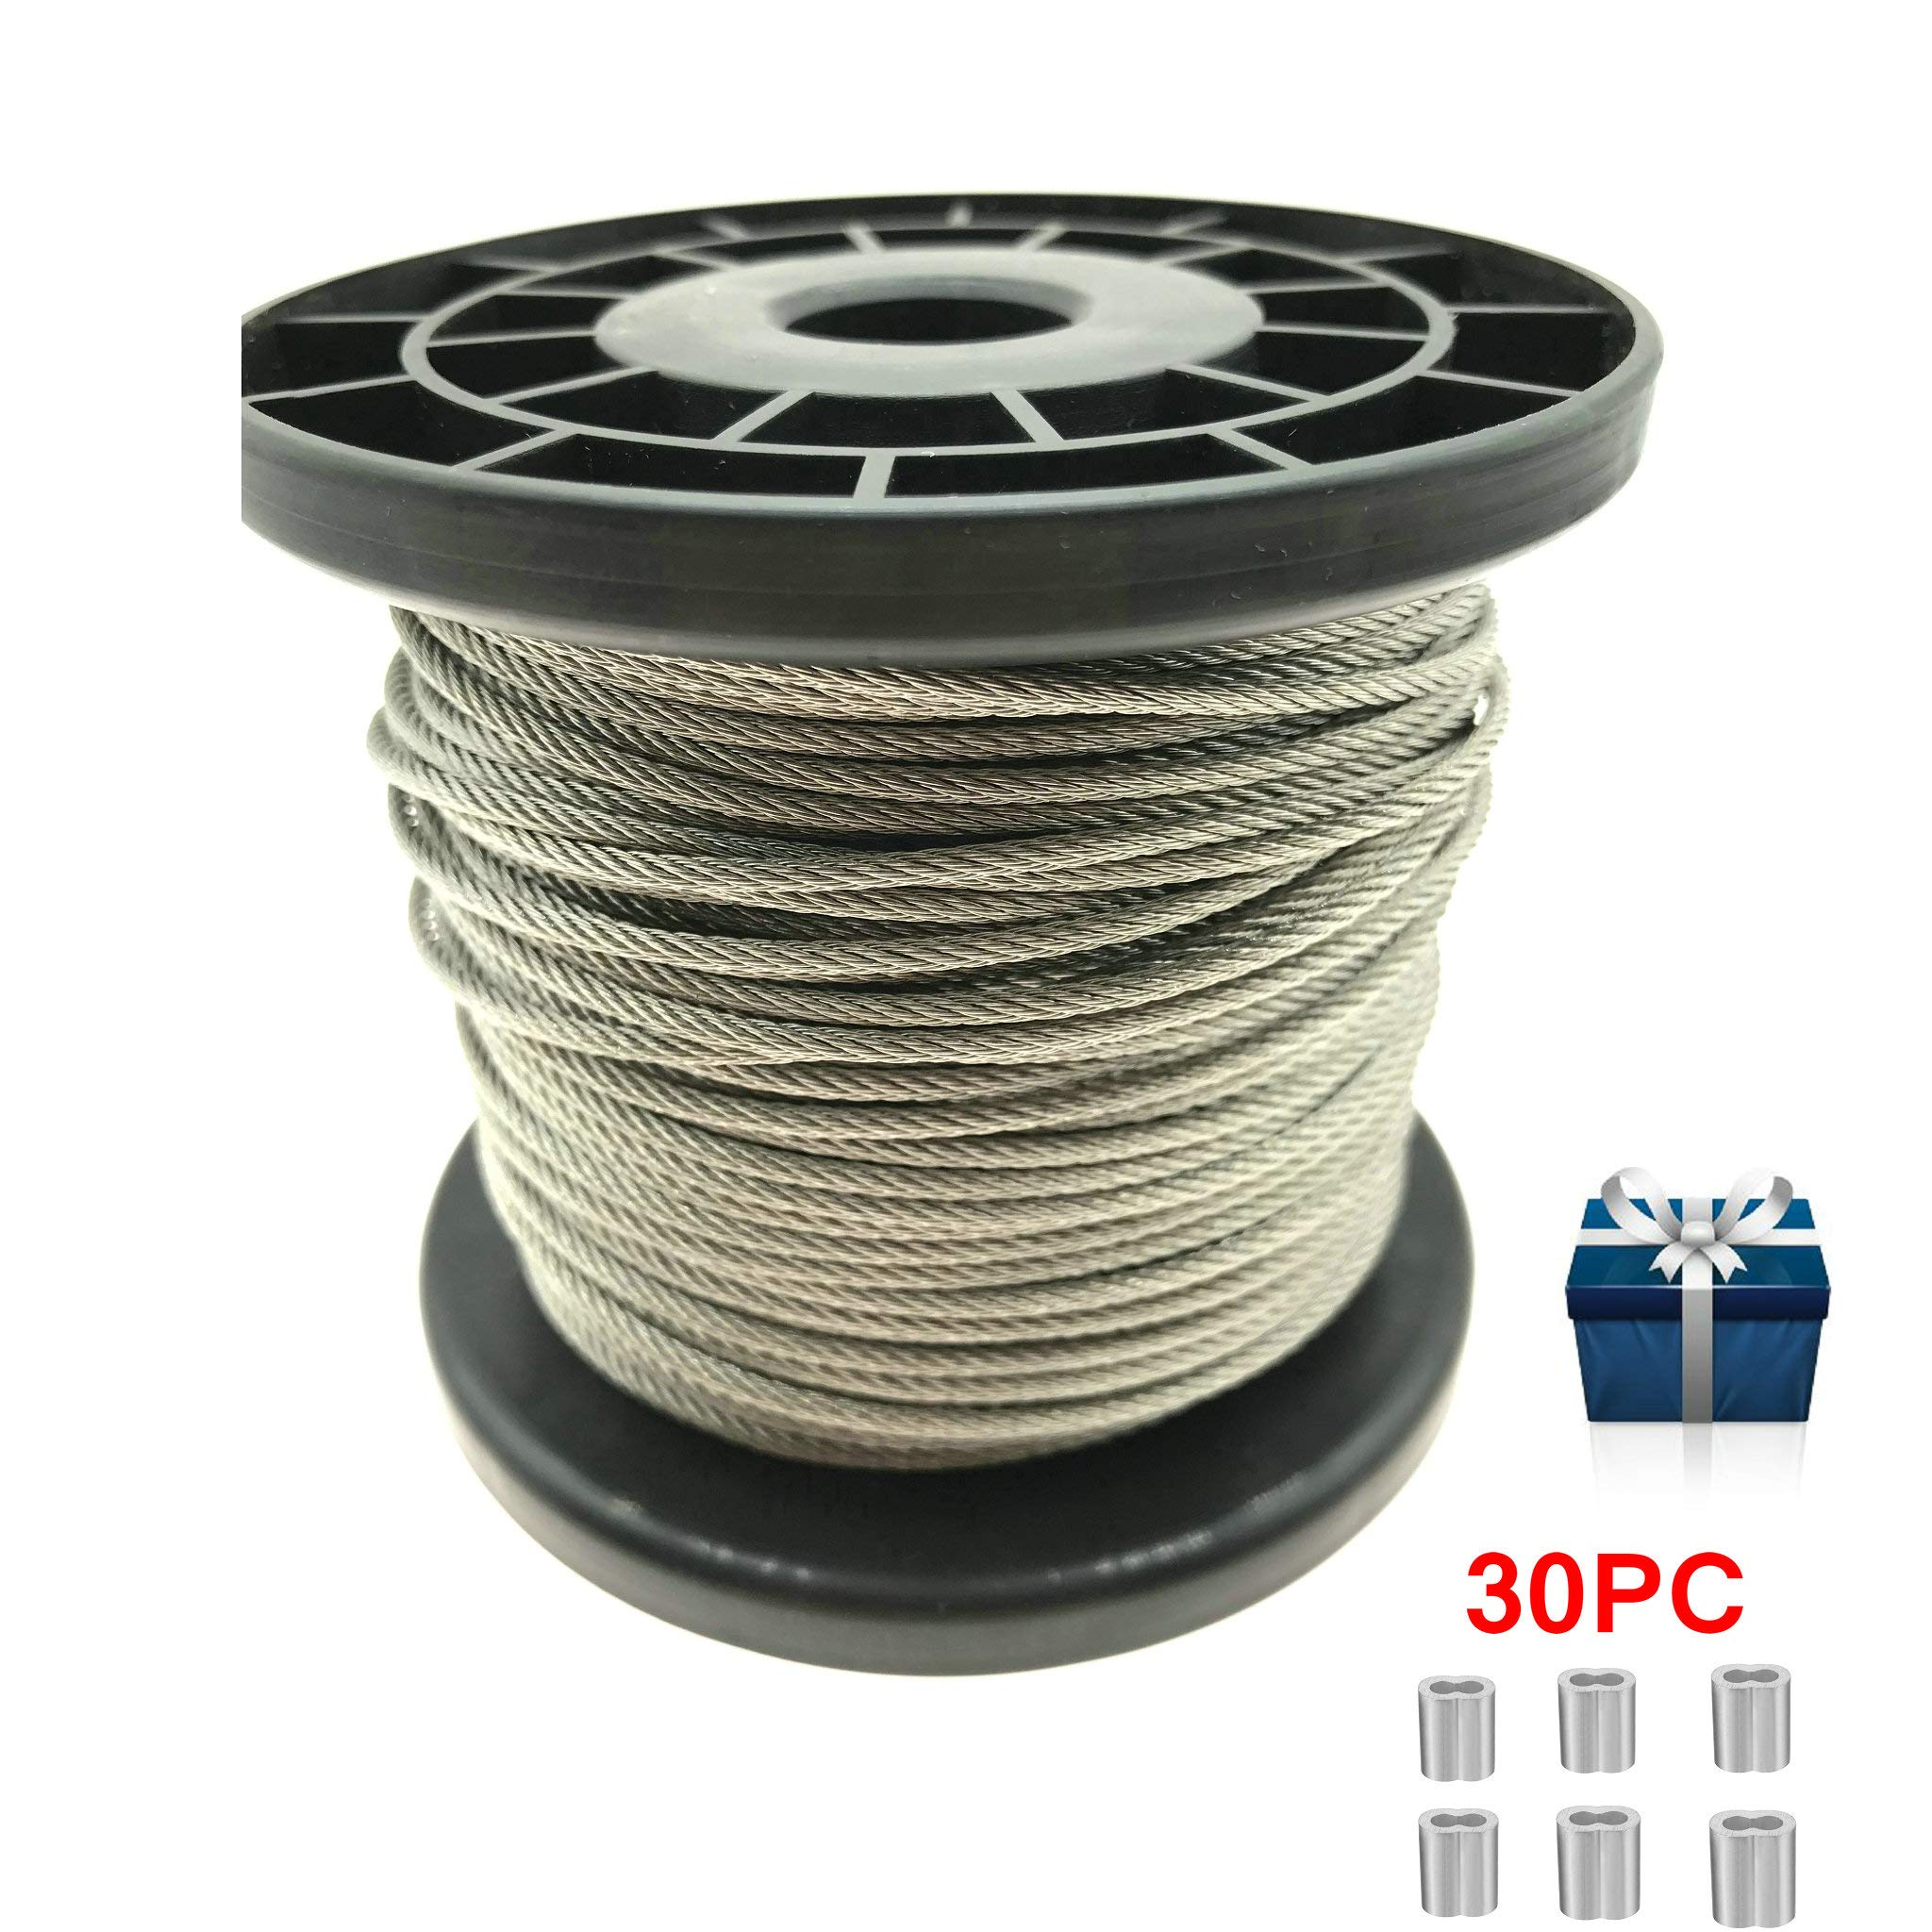 1/12'' 164 FT 304 Stainless Steel Wire Rope Aircraft Cable With 30 PCS Aluminum Crimping Loop 780 Lb Breaking Strength for Deck Cable Railing Light Guide Wire by Yountiger